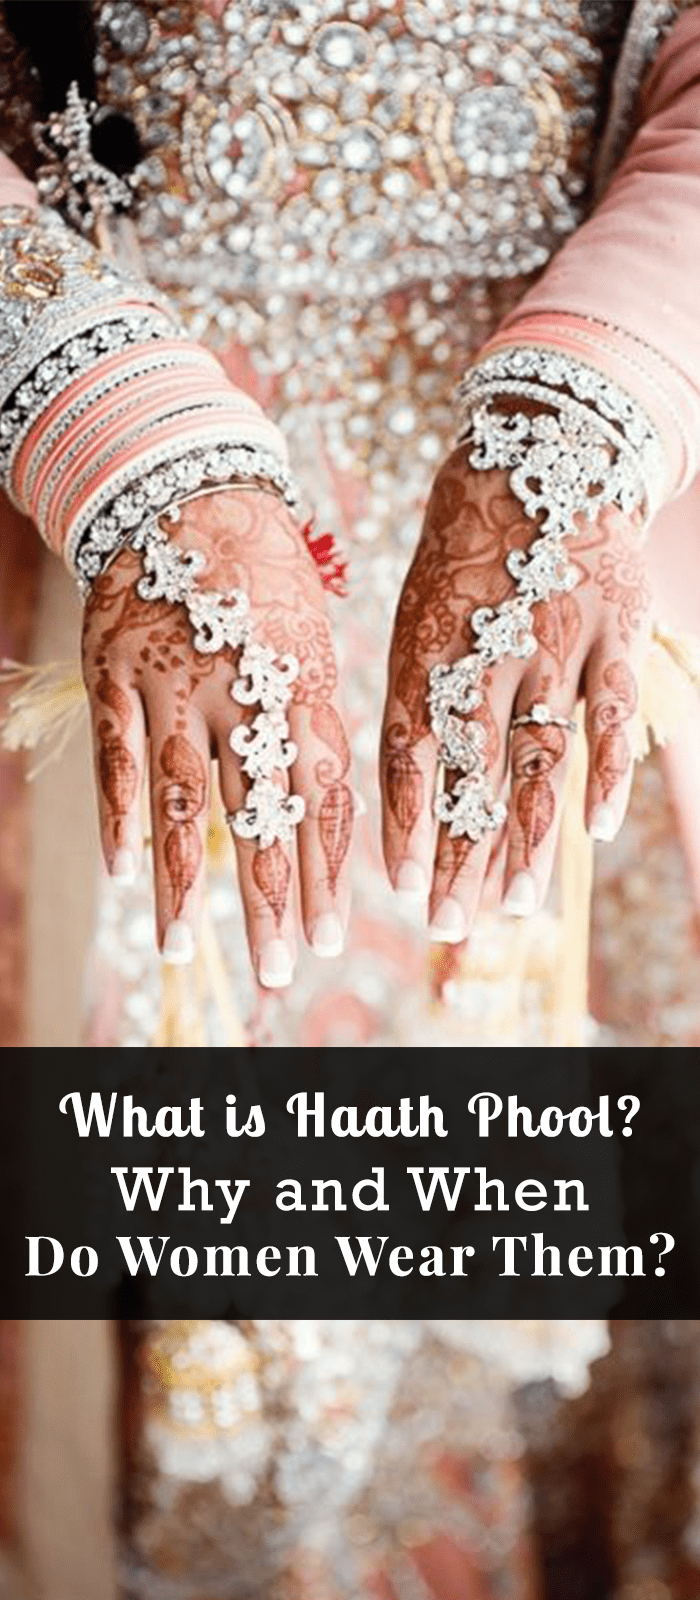 What is Haath Phool Why and When Do Women Wear Them